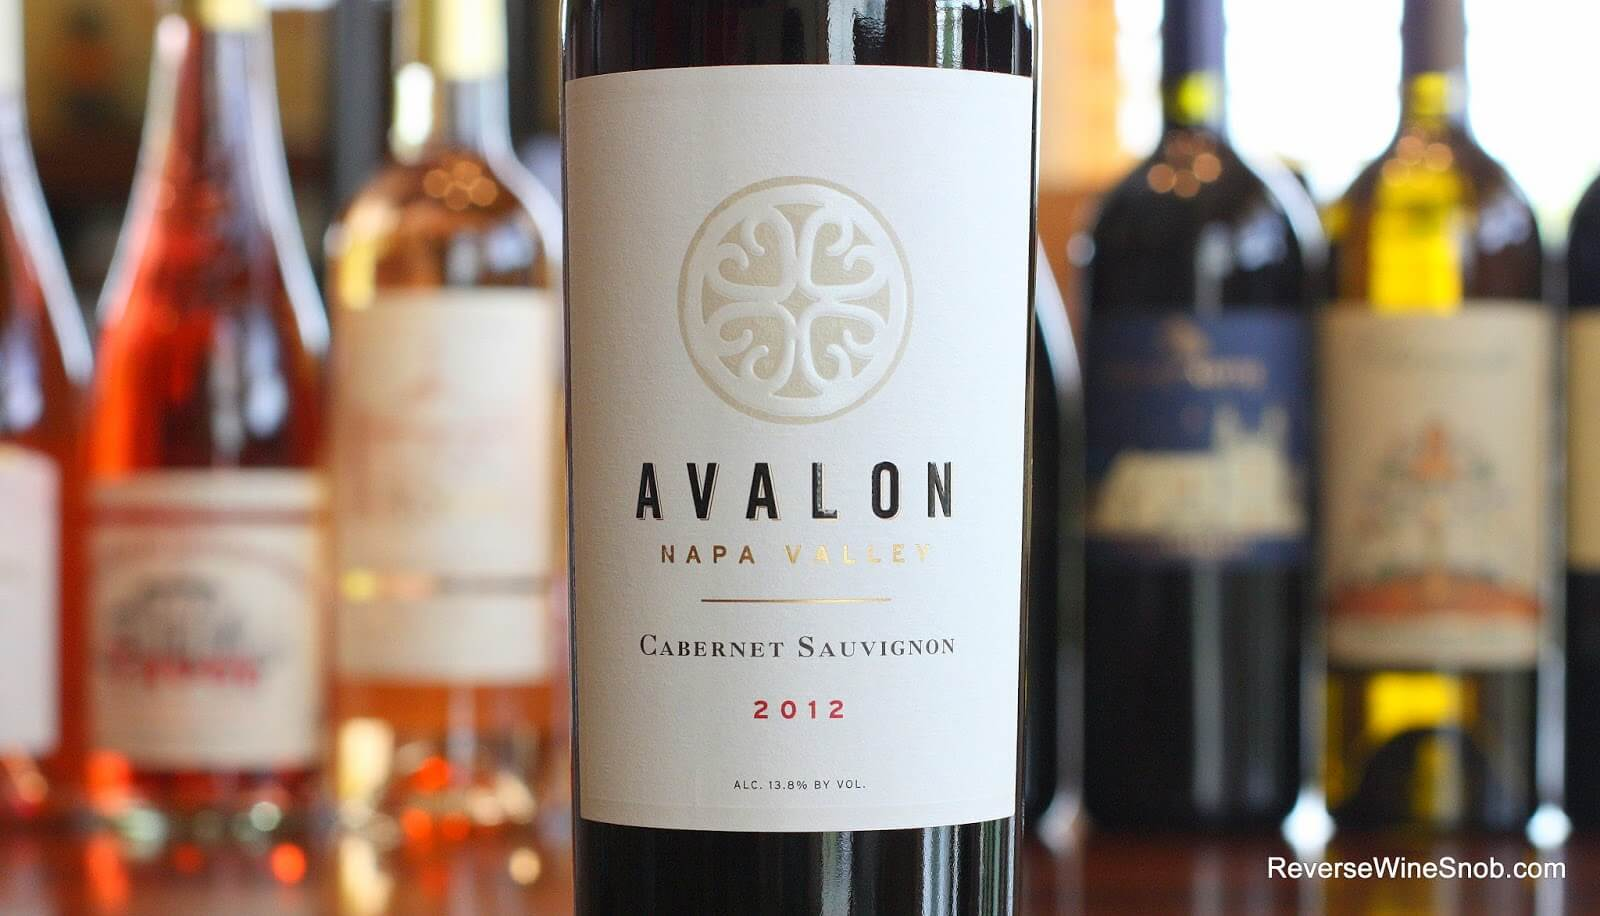 2012-Avalon-Napa-Valley-Cabernet-Sauvignon